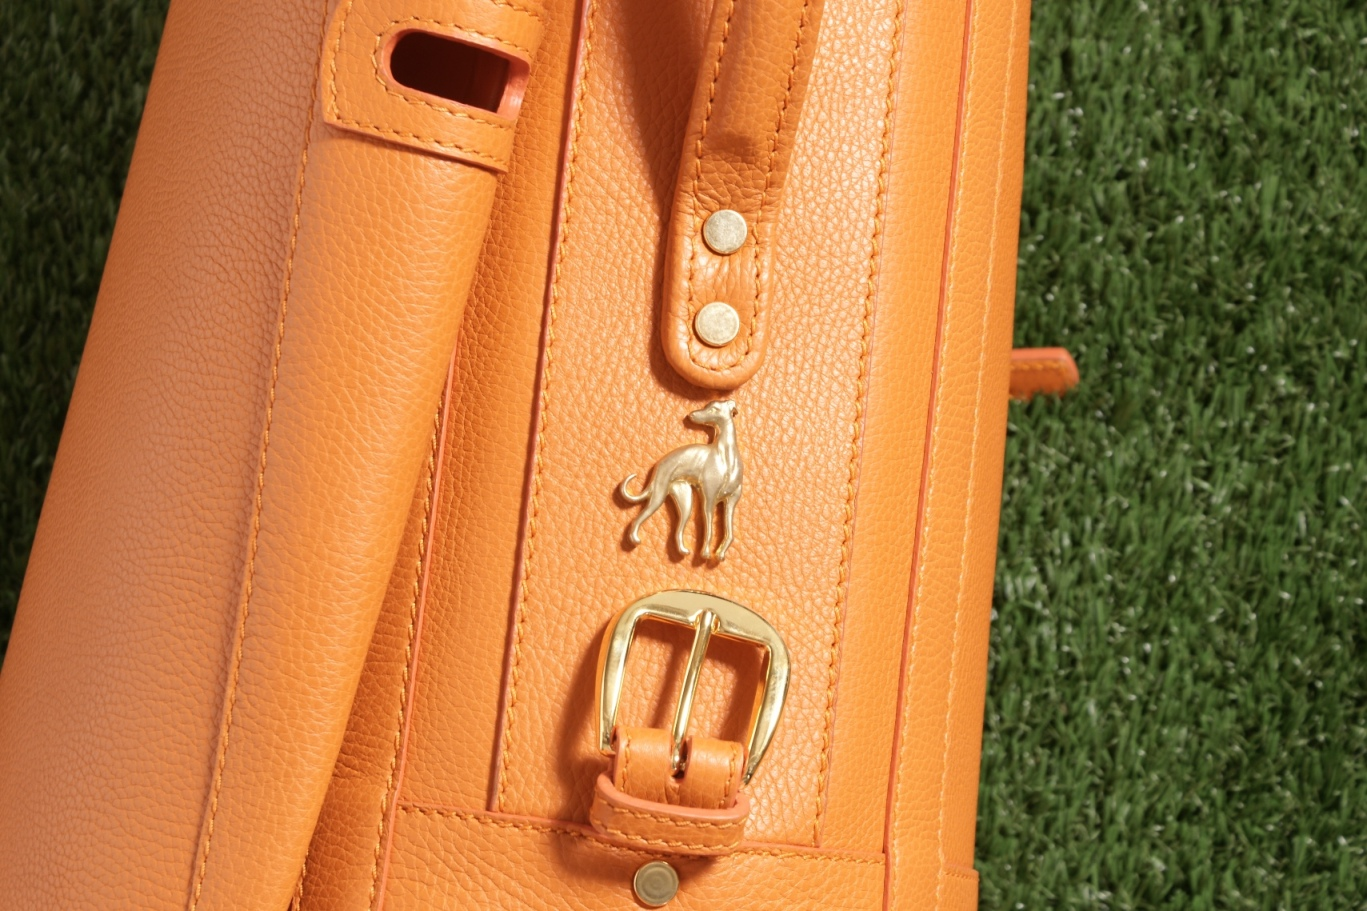 Luxury Golf Leather Bag Orange Claf (19)